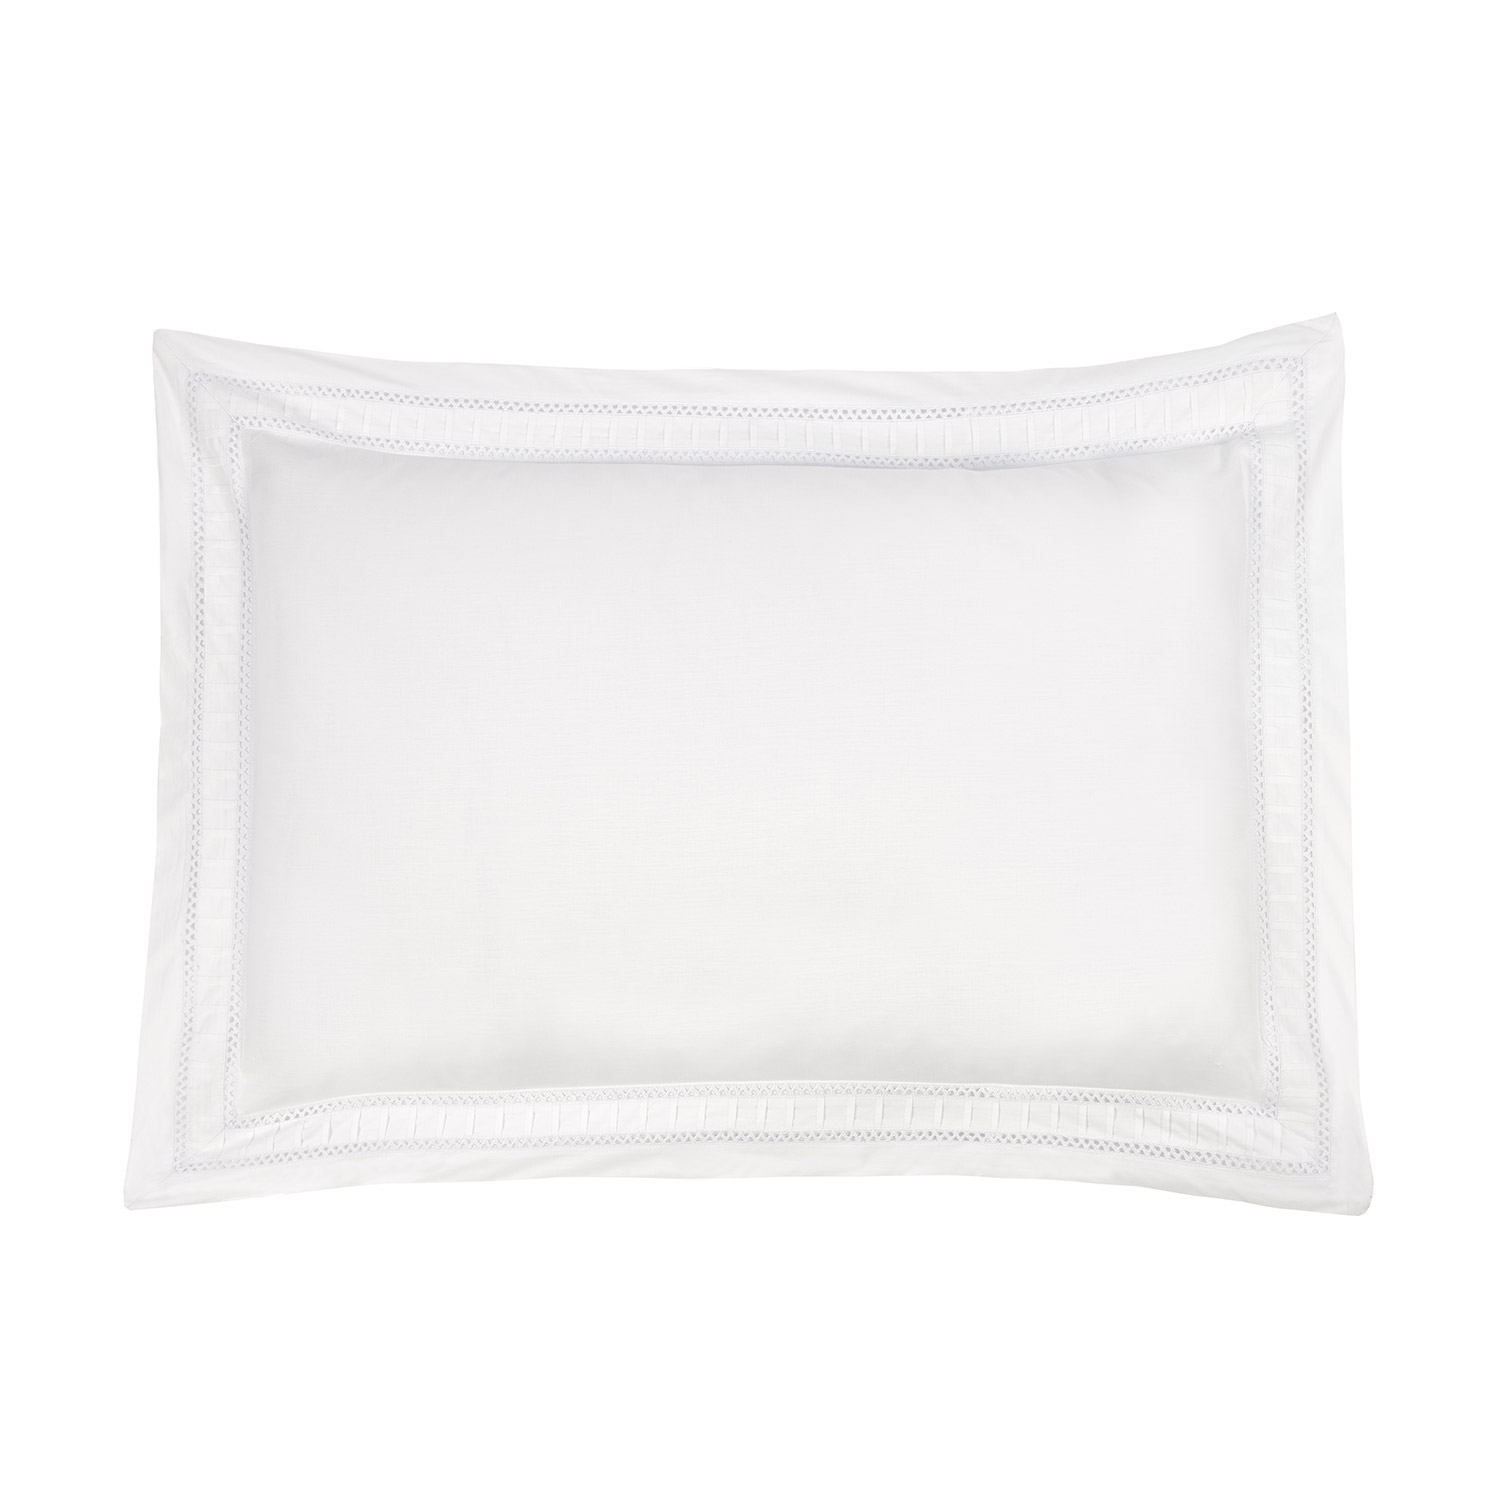 Cleo White Embroidered Luxury Oxford Pillow Cases (Pair)